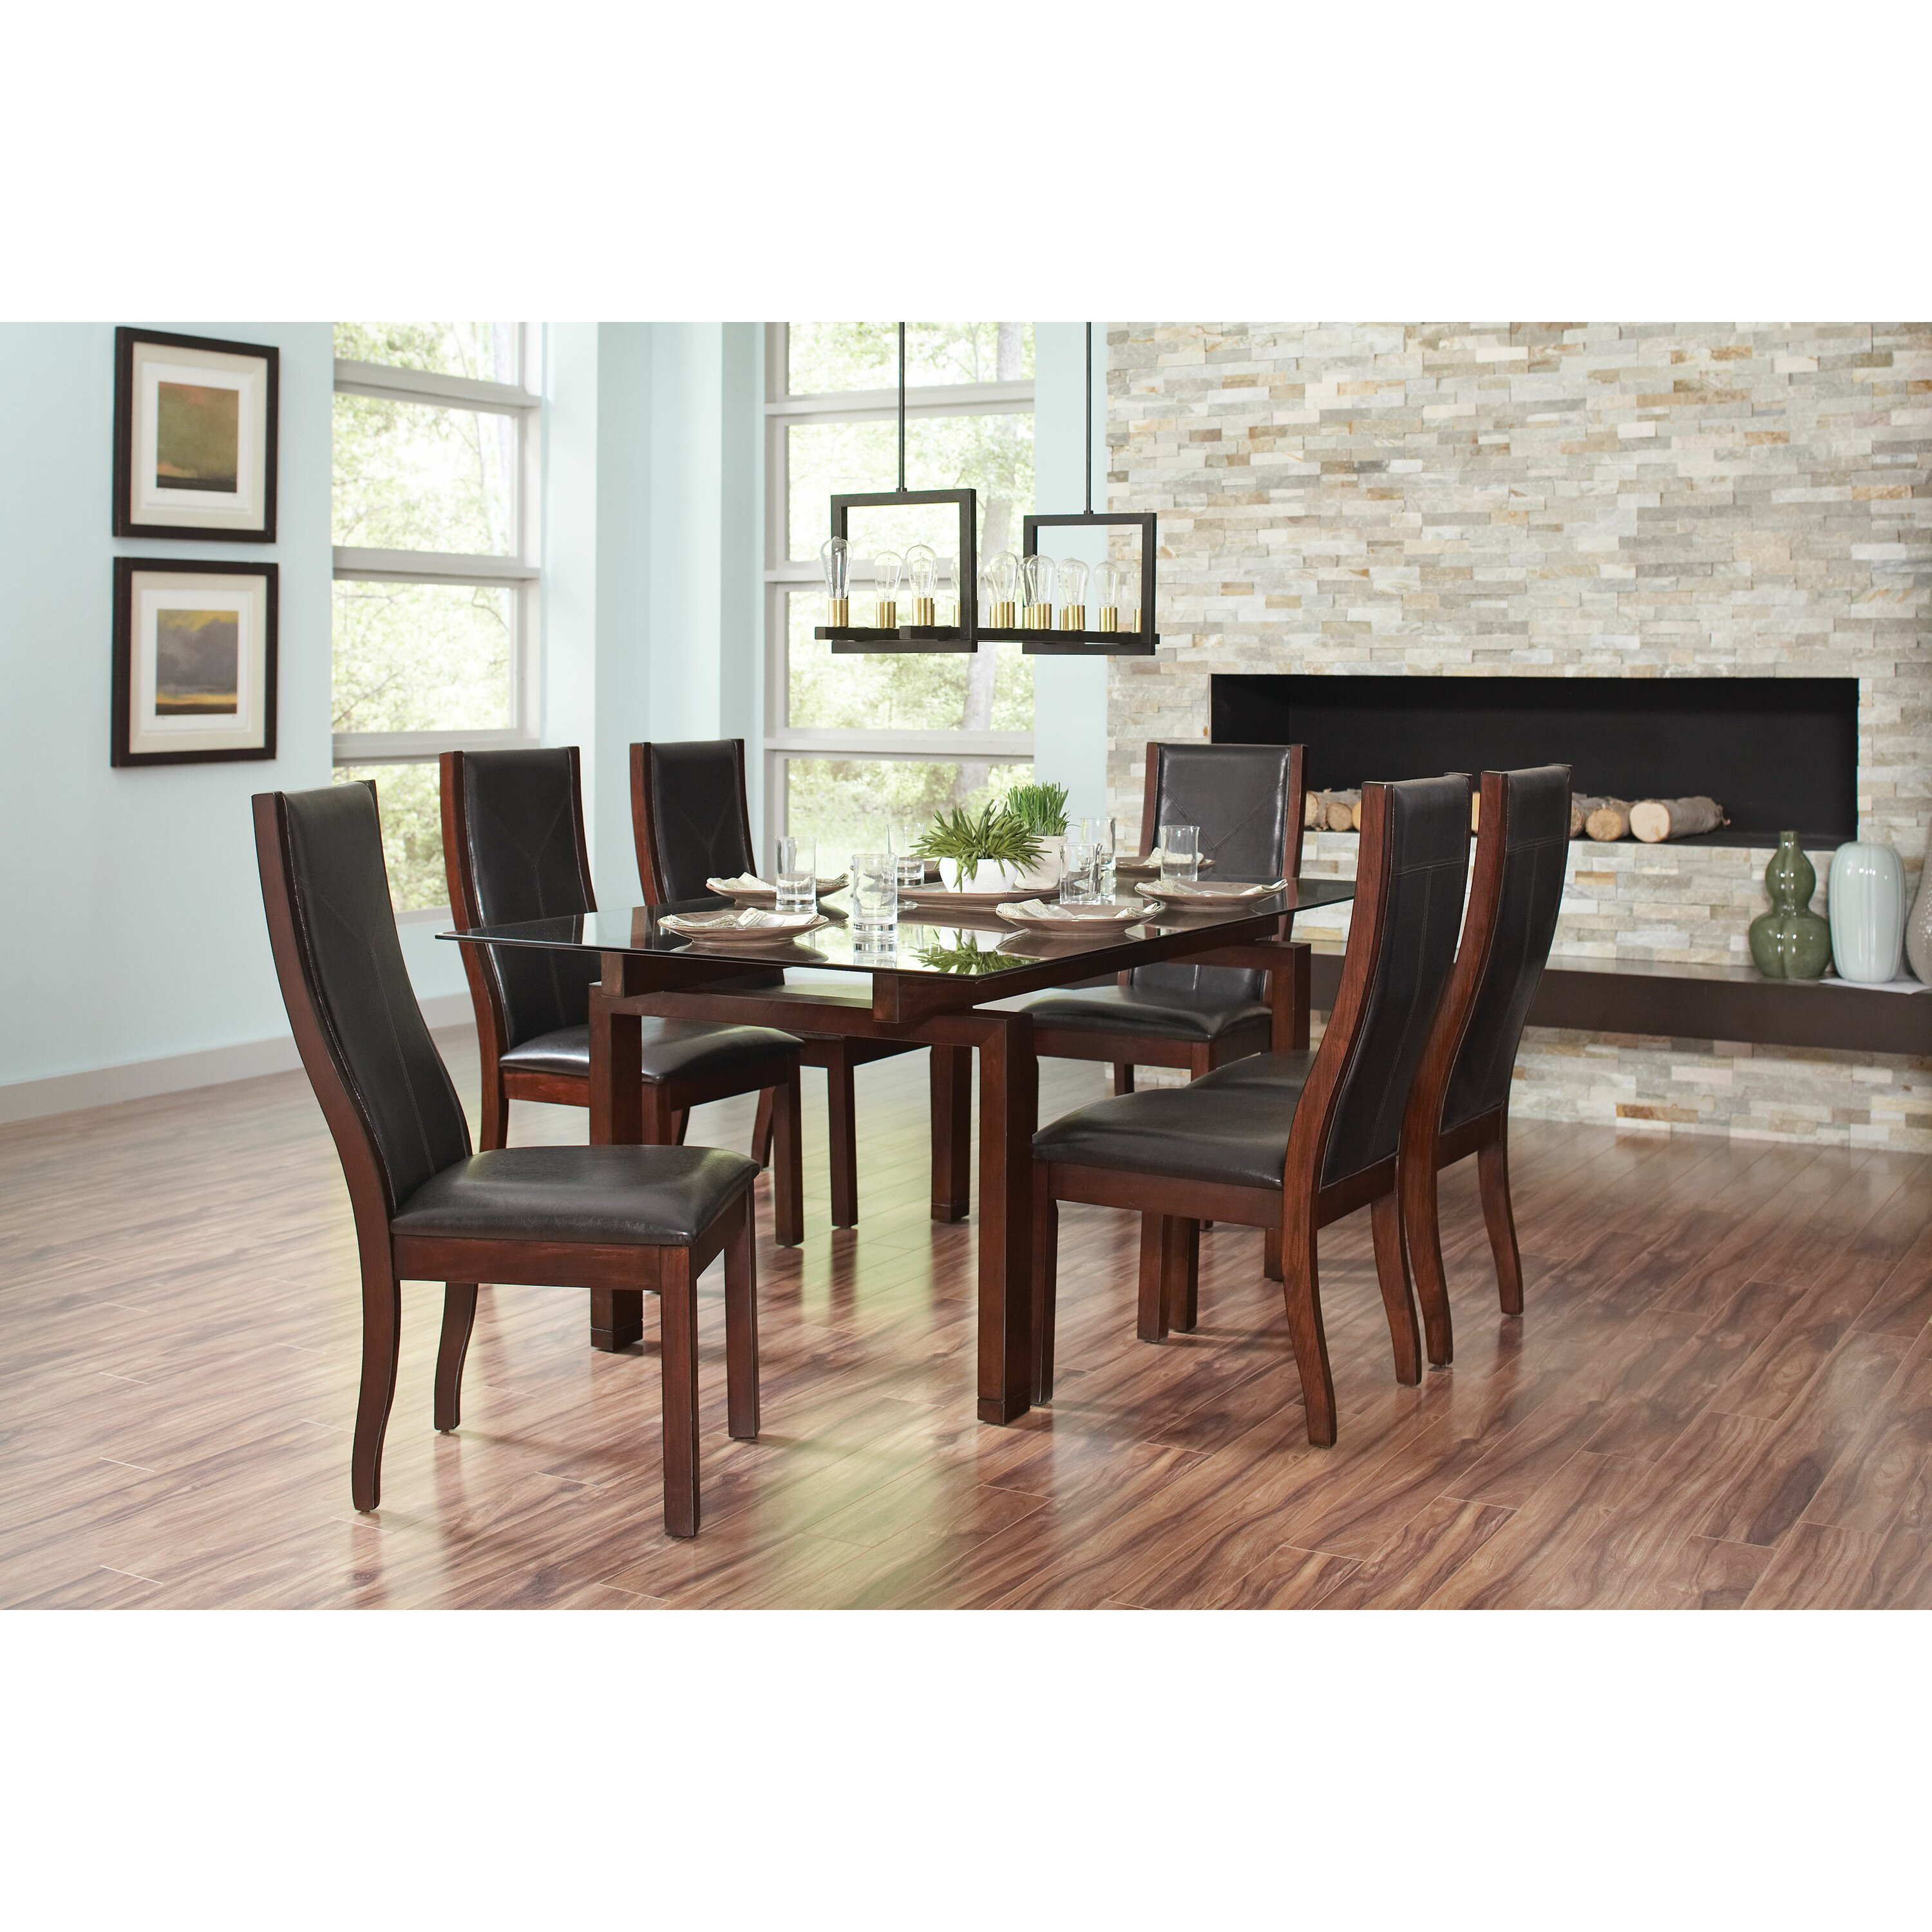 Wildon home rossine dining table for Wildon home dining